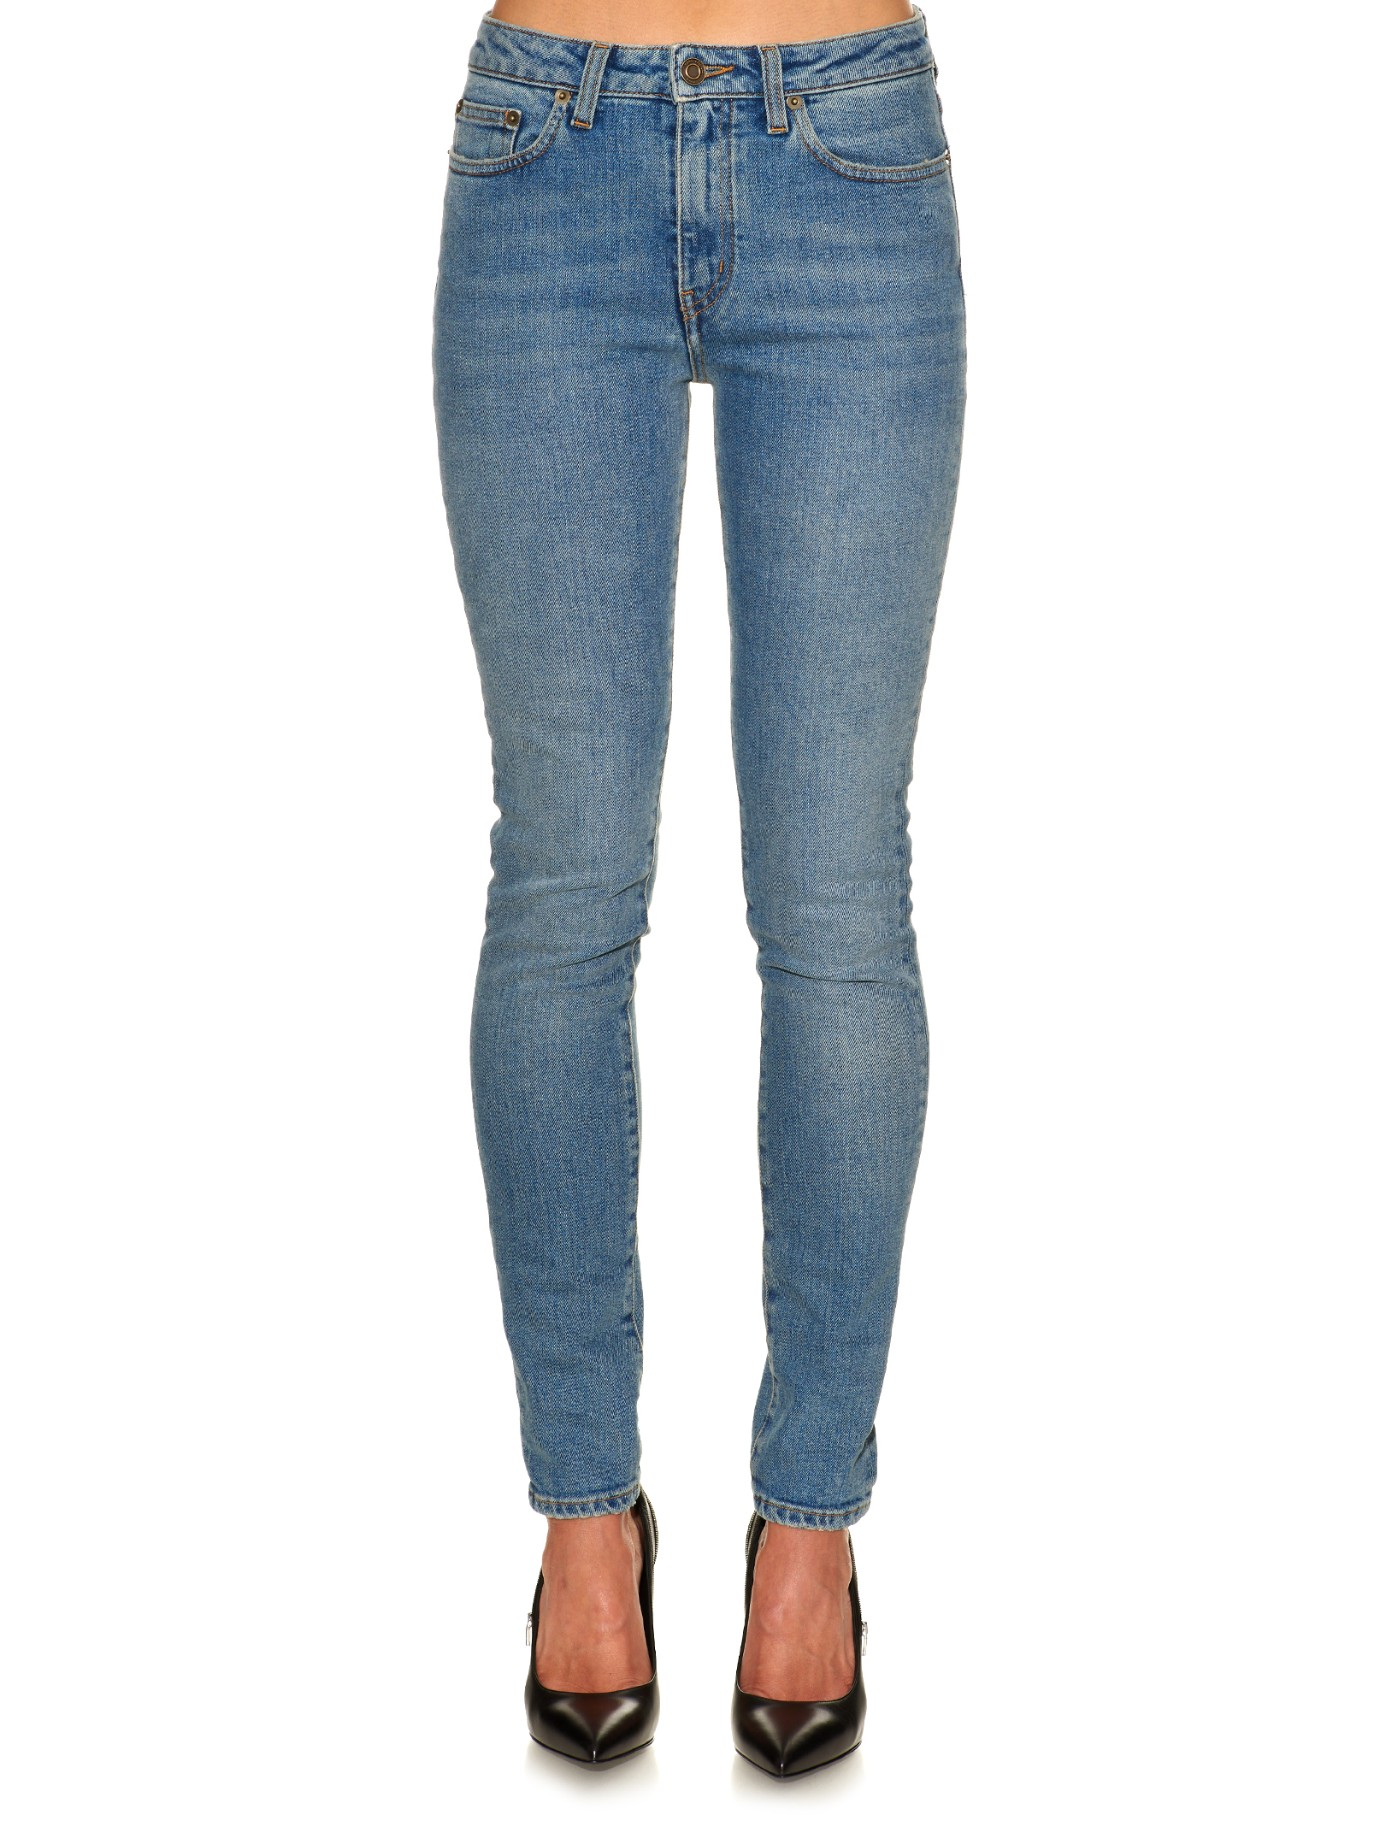 lyst saint laurent mid rise cropped skinny leg jeans in blue. Black Bedroom Furniture Sets. Home Design Ideas